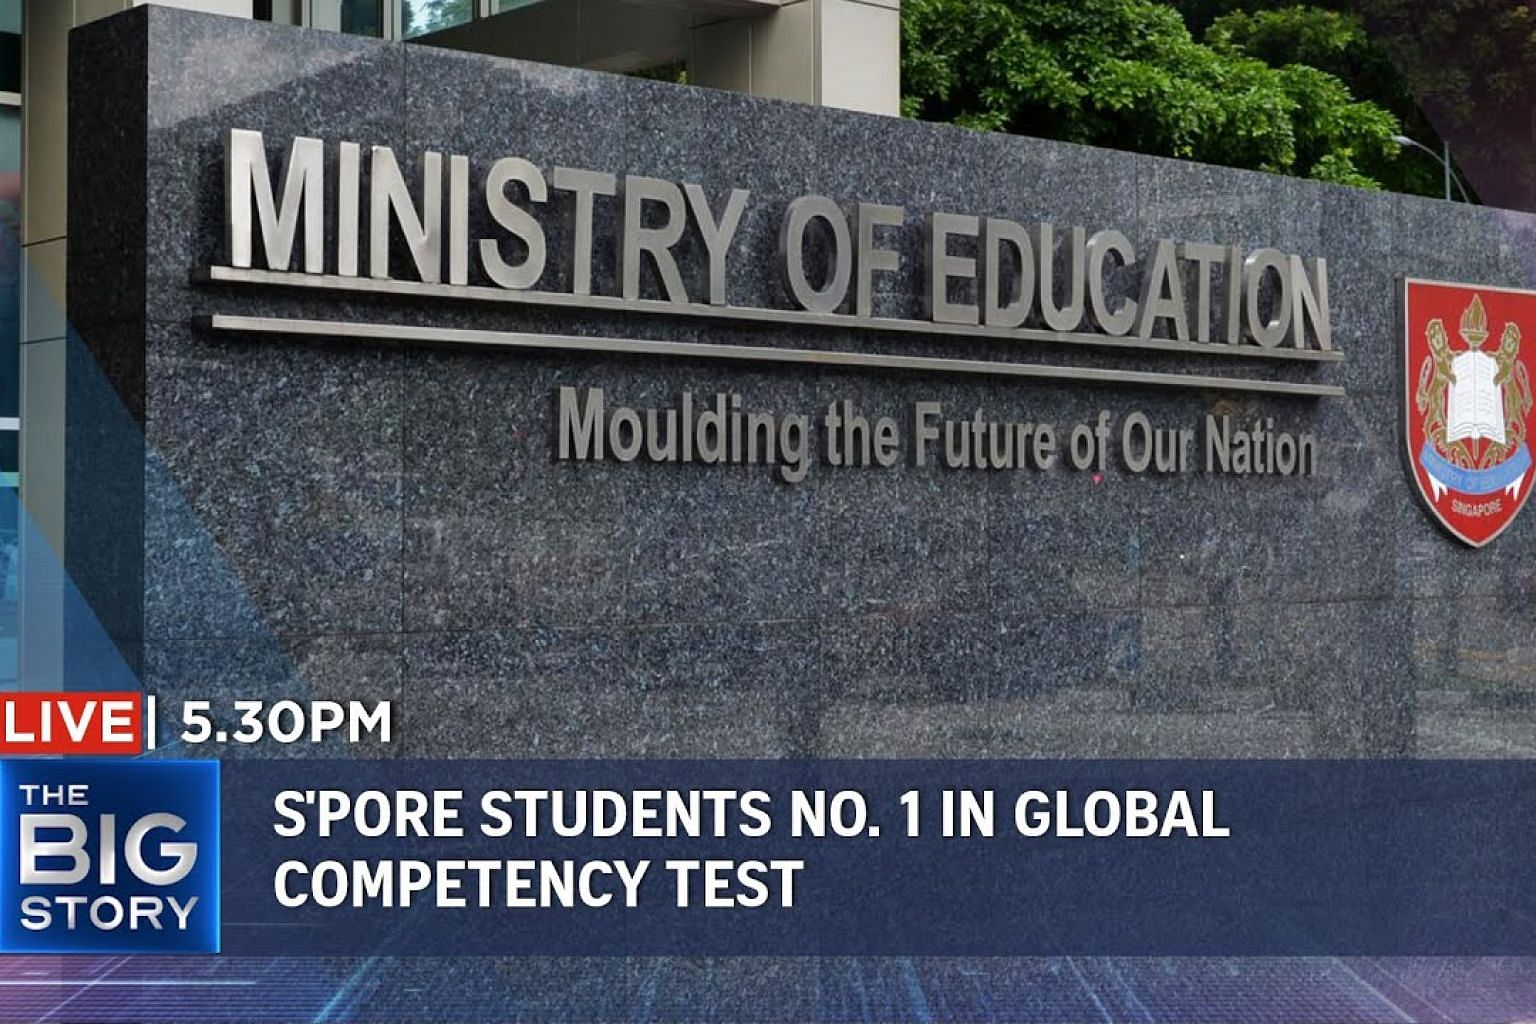 S'pore's 15-year-olds top global competency test | Thailand lifts emergency decree | THE BIG STORY